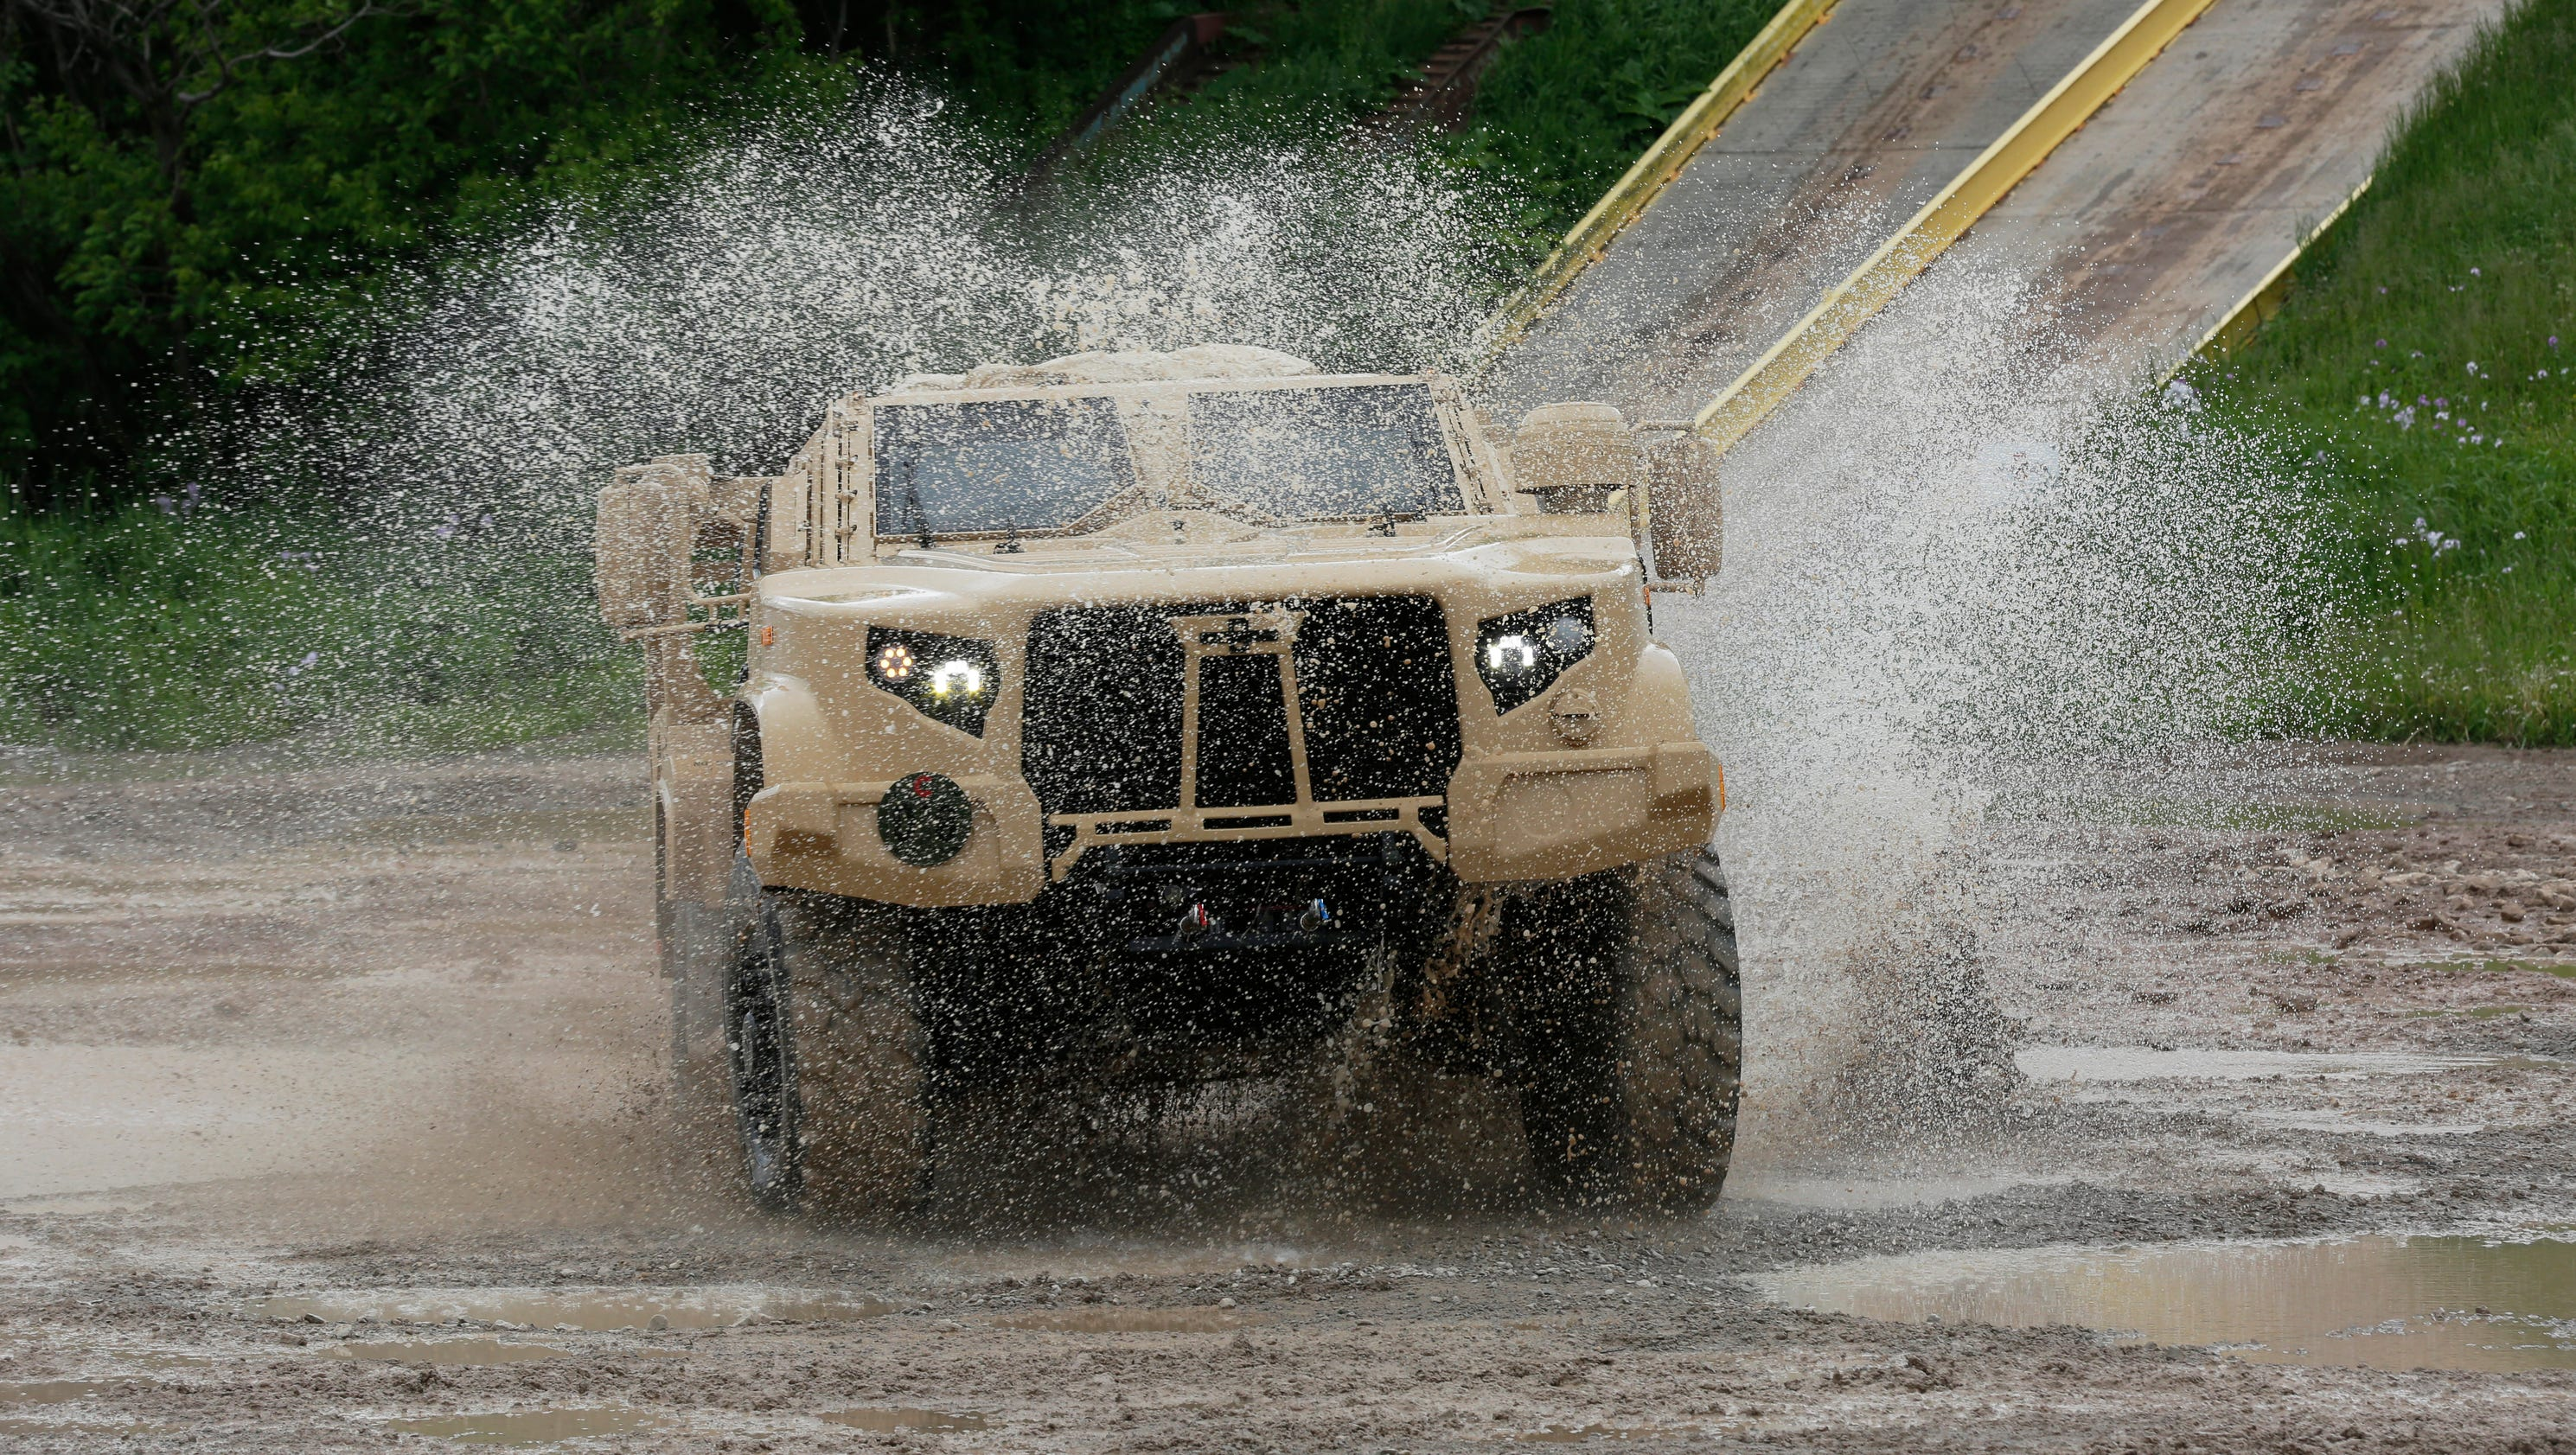 Oshkosh Defense Jltv >> Oshkosh Corp. off to solid start in 2018 thanks to boost in military spending